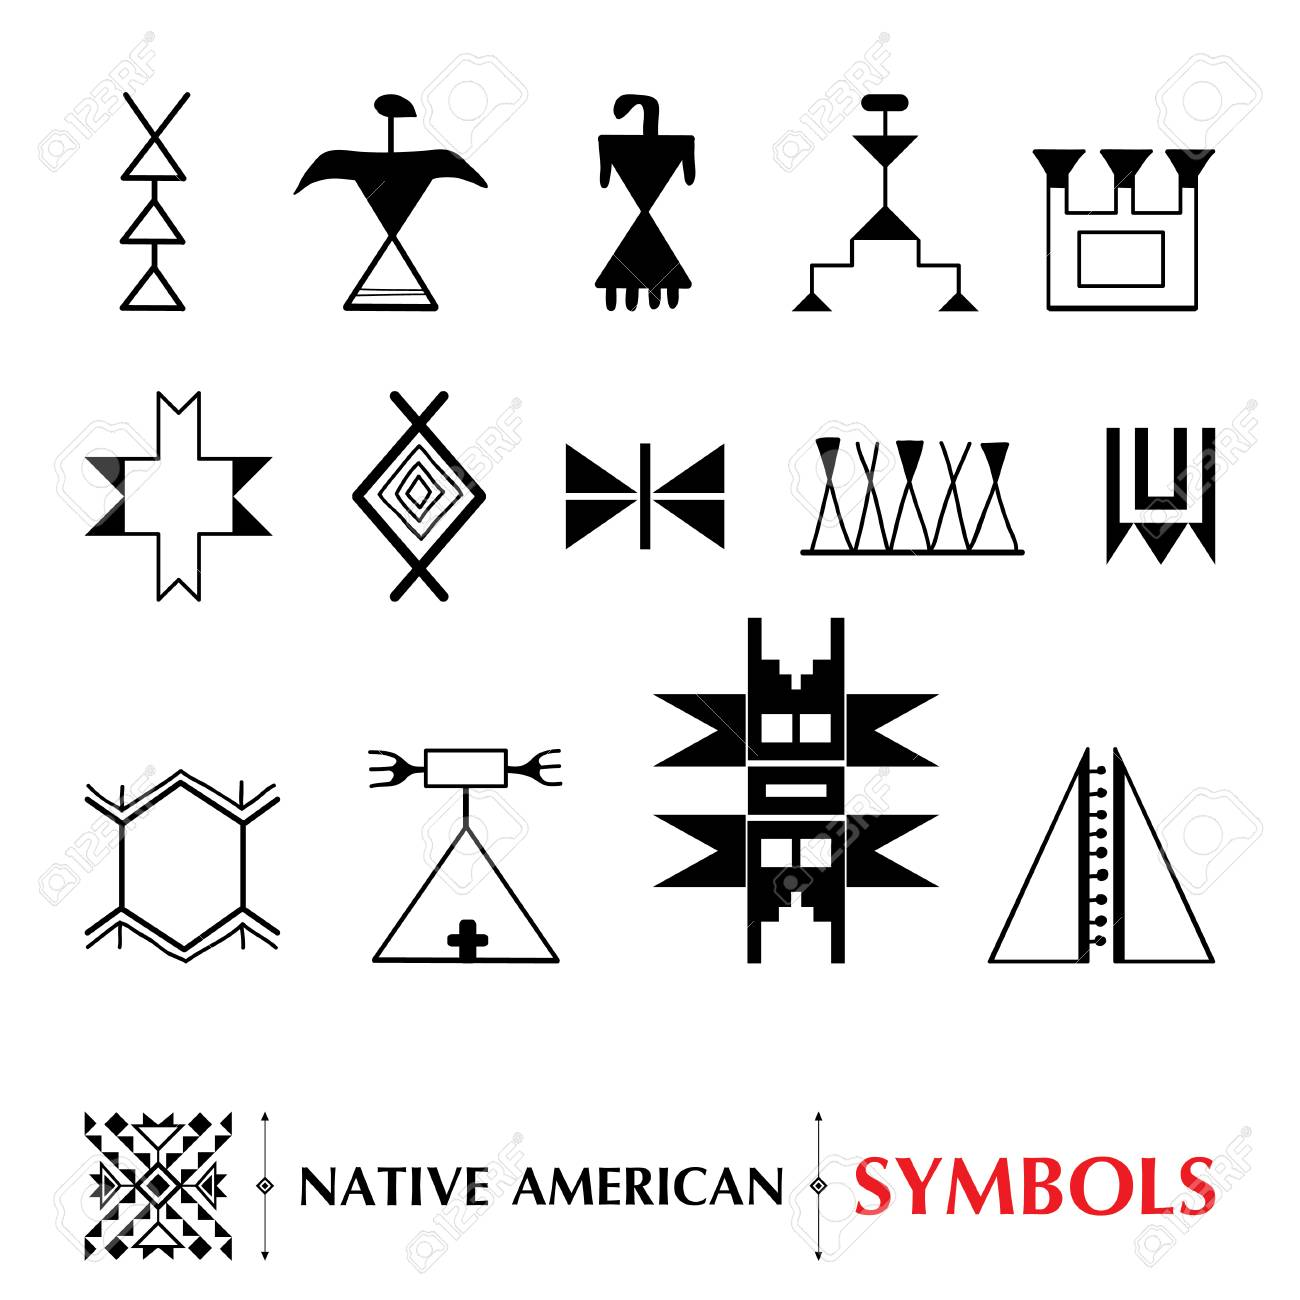 collection with Native American symbols isolated on white background.